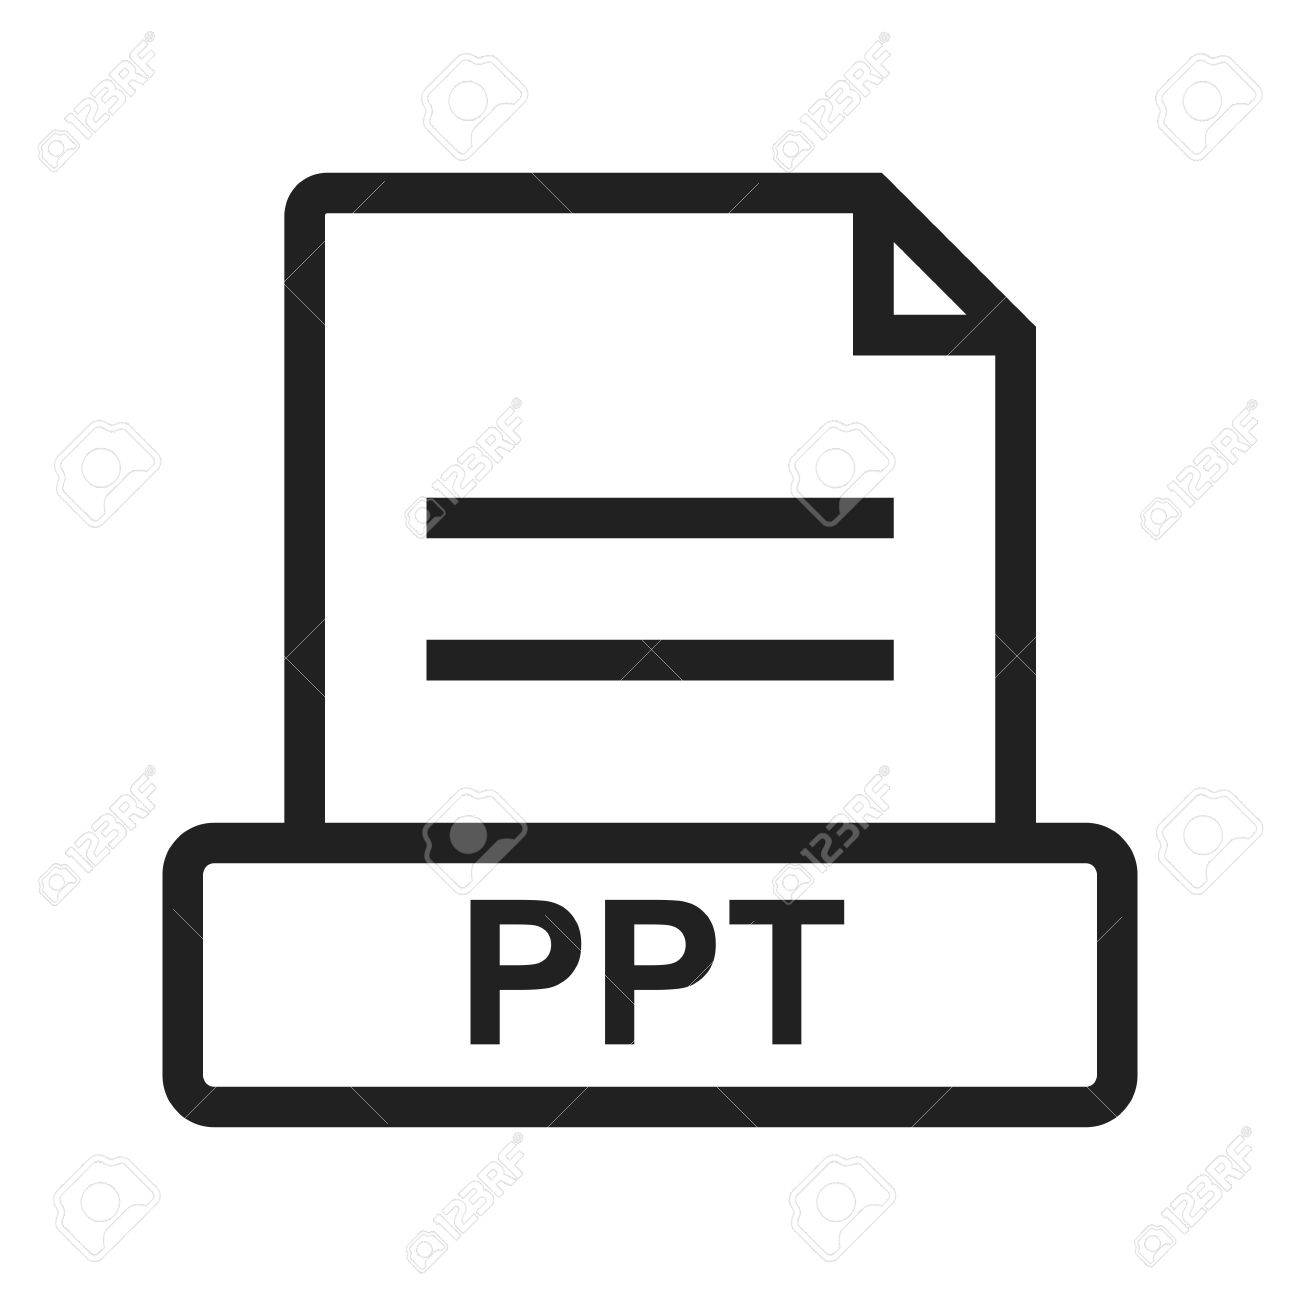 ppt file presentation icon vector image can also be used for